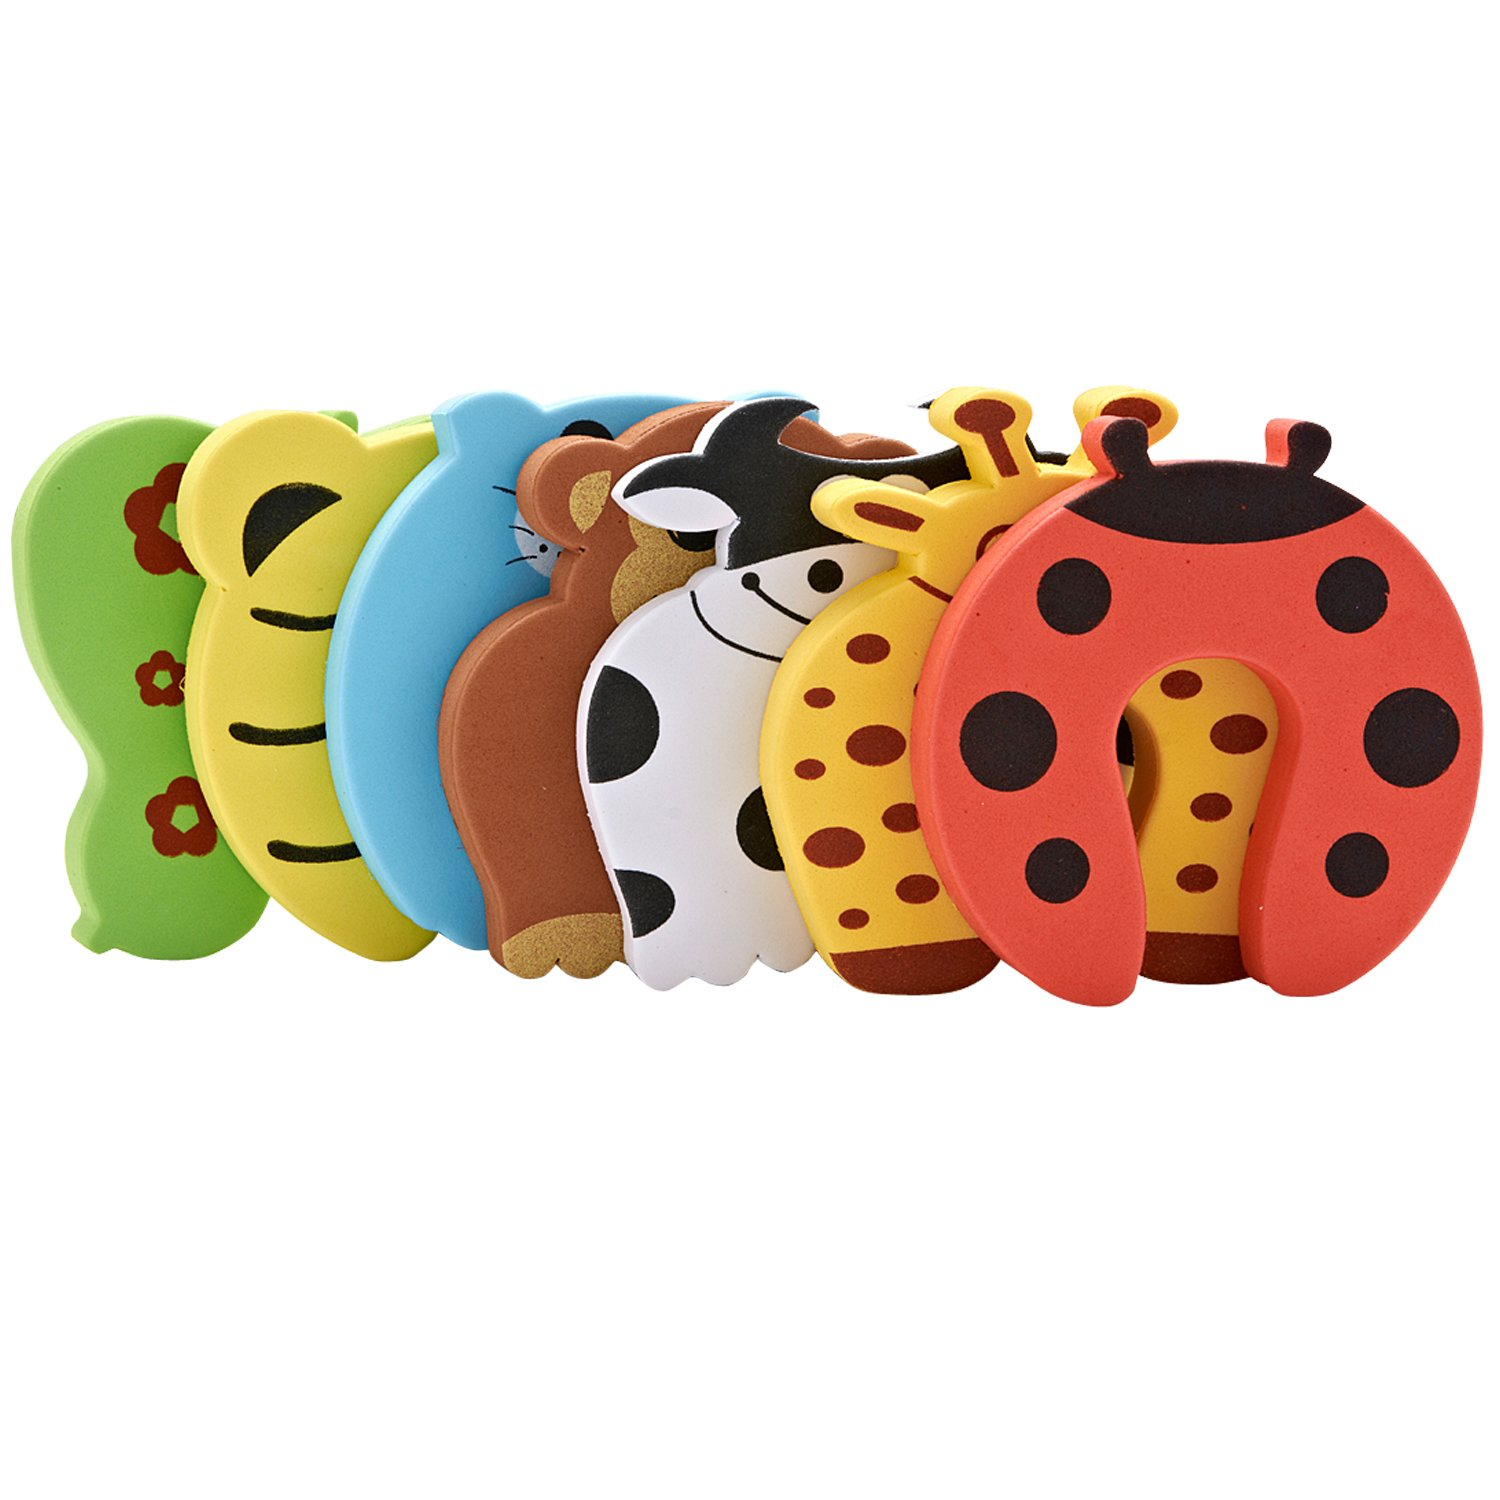 Door Stopper Finger Pinch Guard Set of 7, JamHoo Children Safety Colorful Cartoon Animal Foam Door Stop Cushion for Baby/Children Safe JamHooDirect